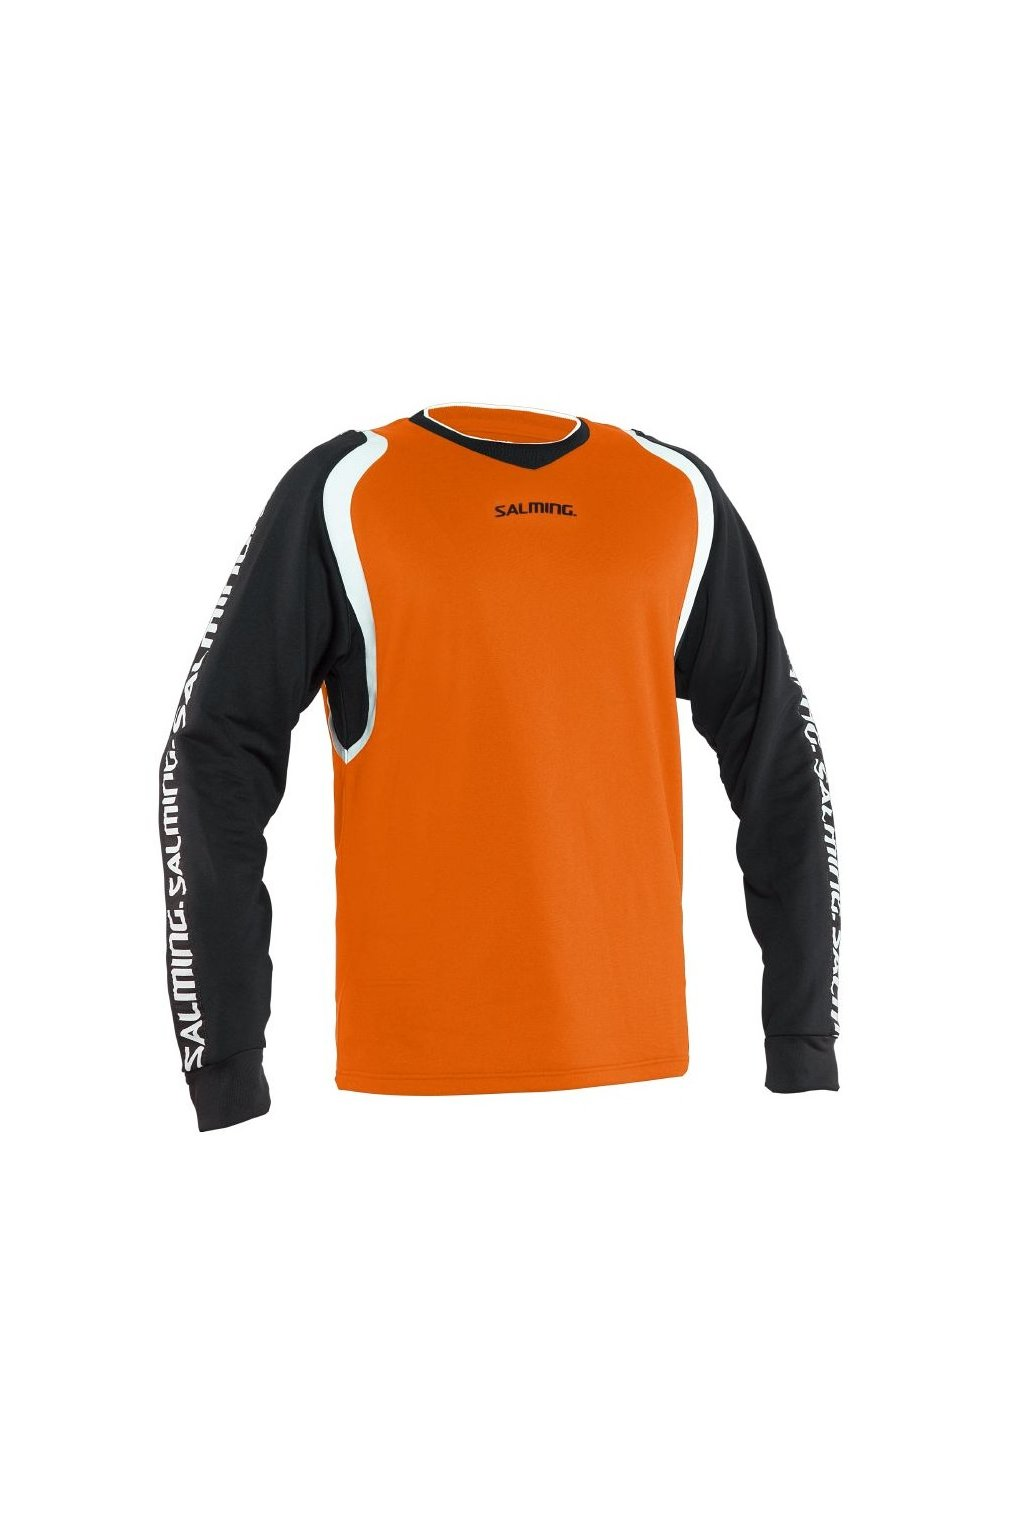 salming agon ls jersey (1)